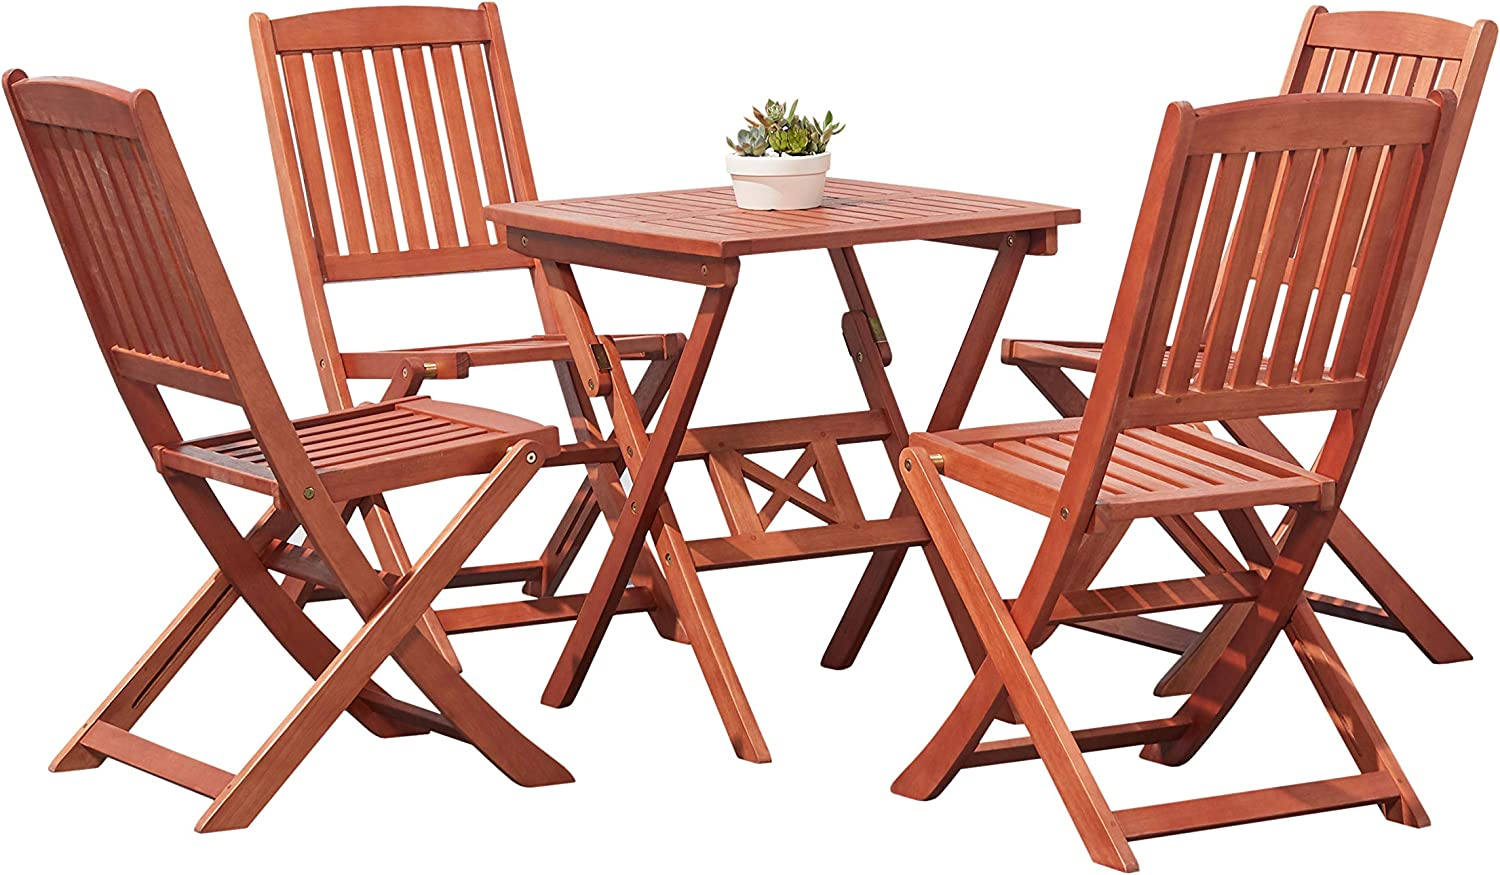 VIFAH V03SET2 Outdoor Wood 5-Piece Dining Set, Natural Wood Finish, 24 by 24 by 27-Inch